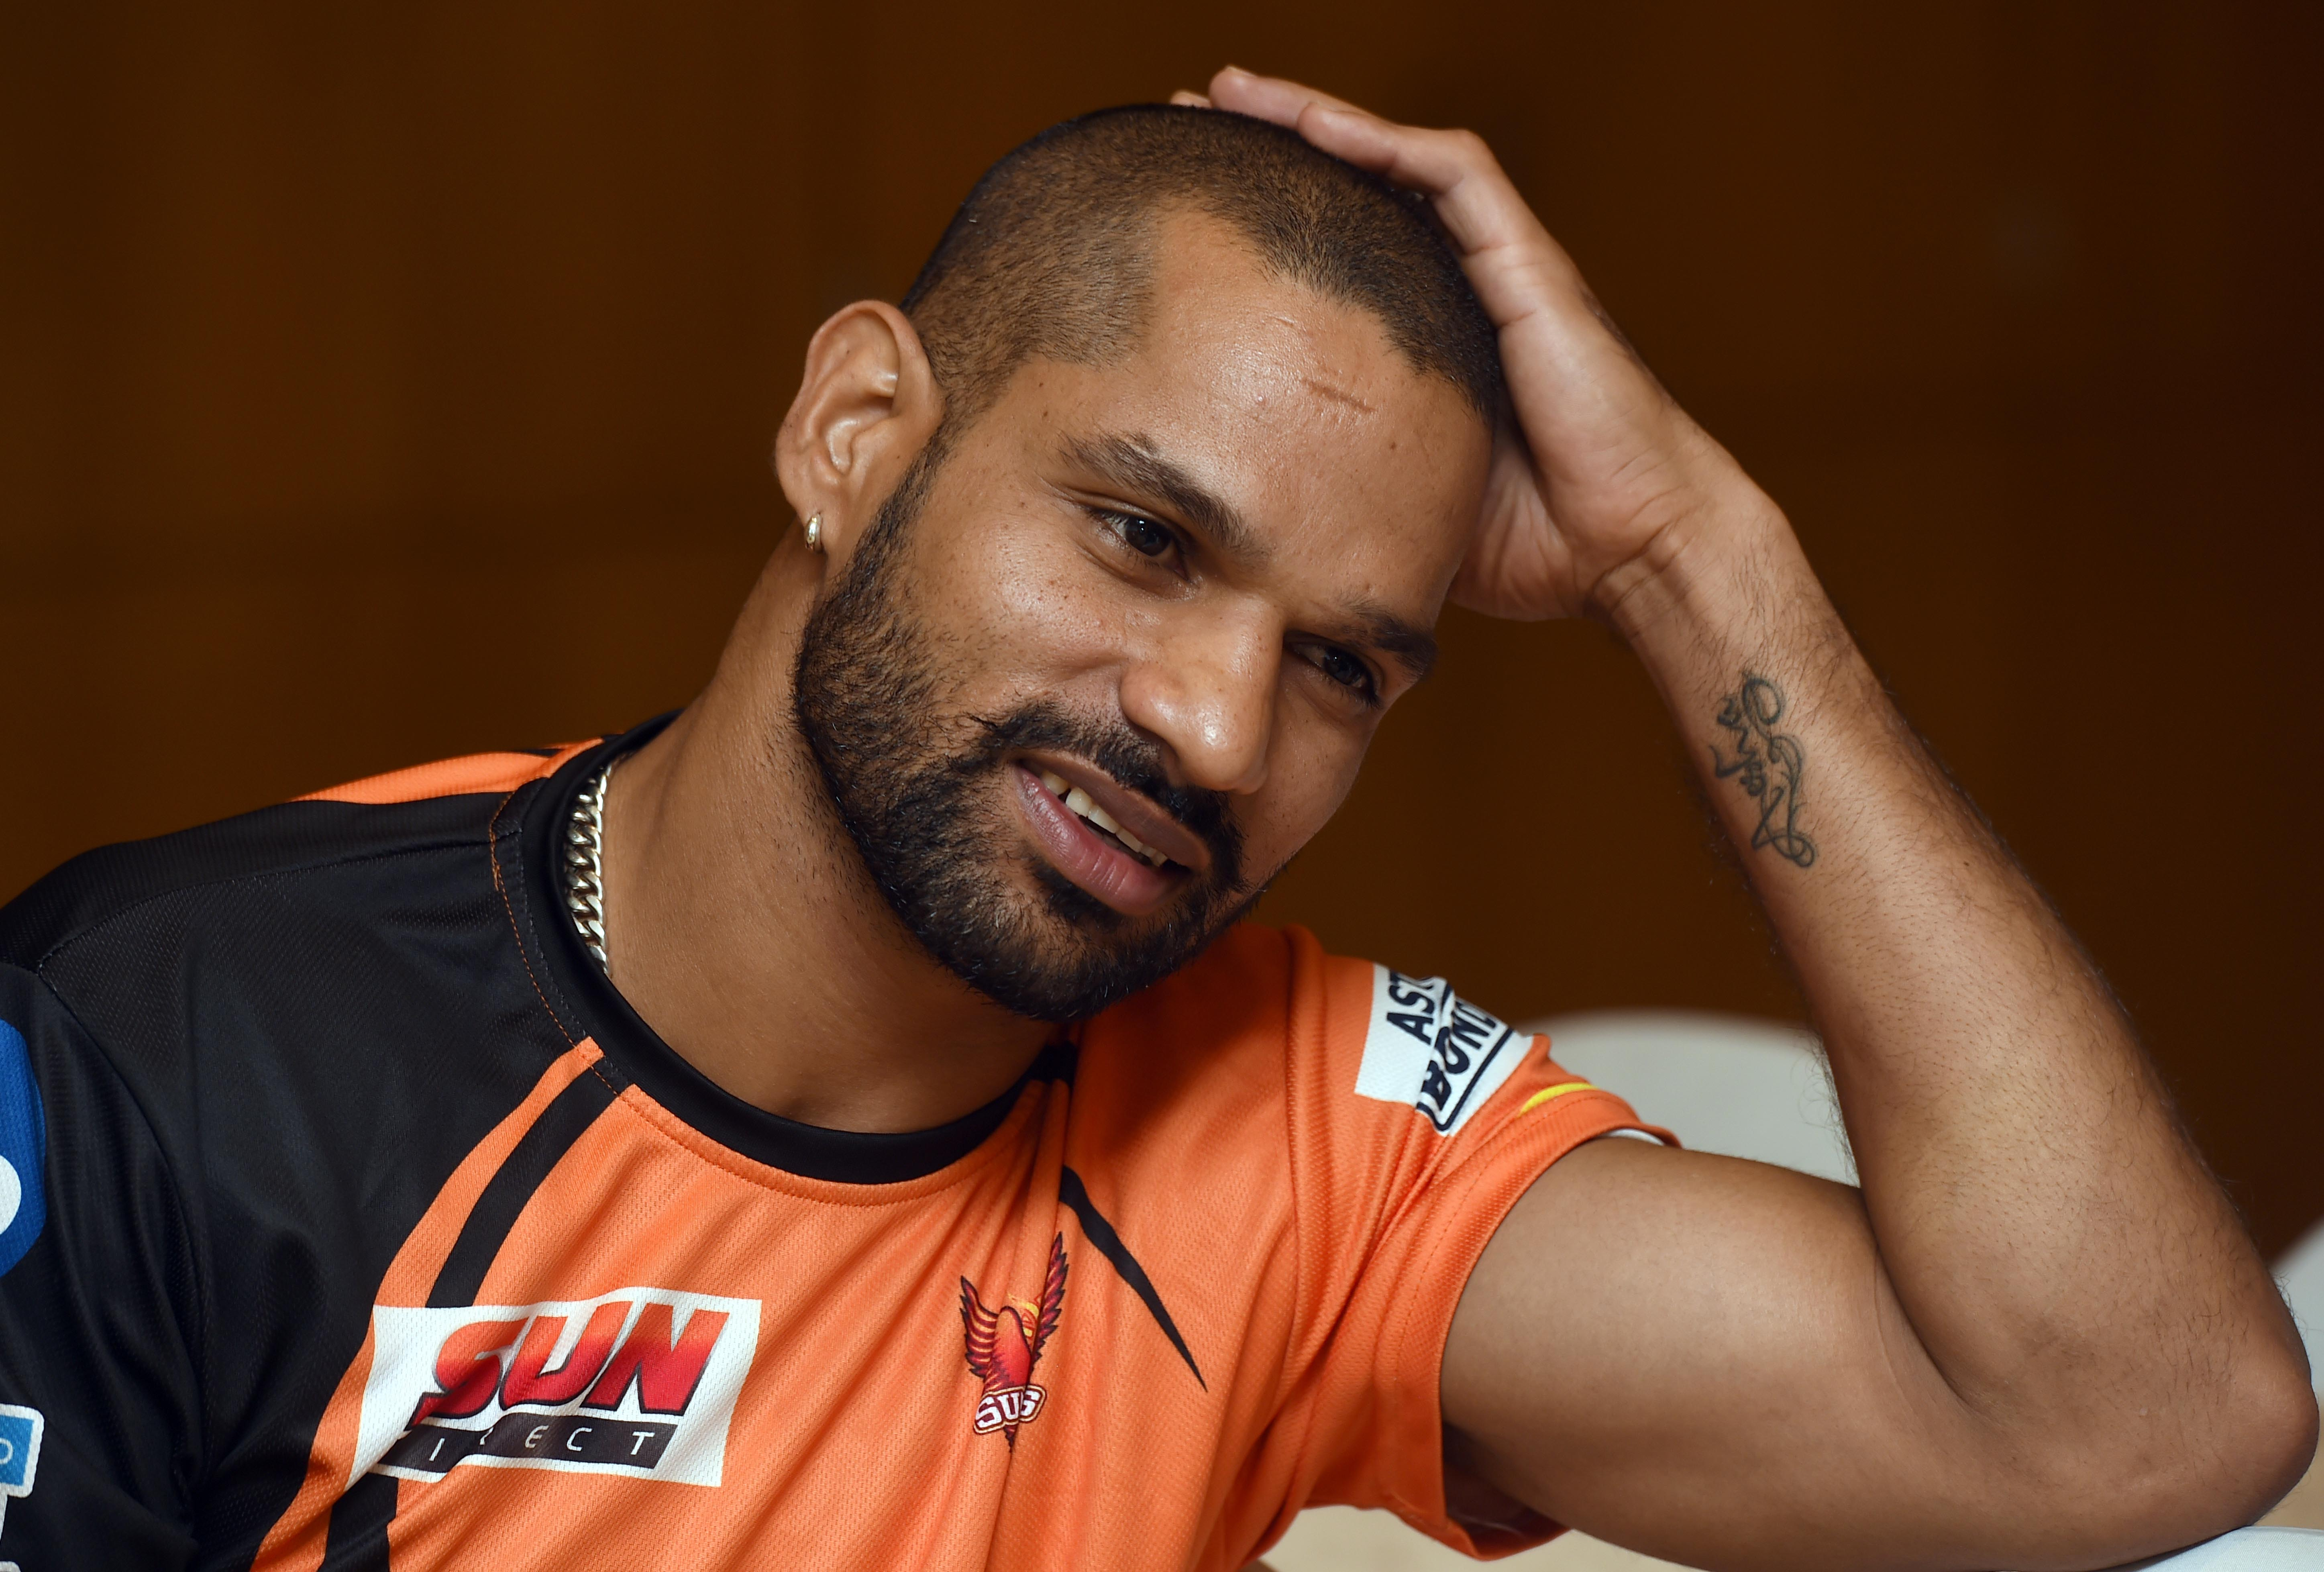 Shikhar Dhawan was bought back by Sunrisers earlier this year for Rs 5.2 crore, but the southpaw was unhappy about his price tag